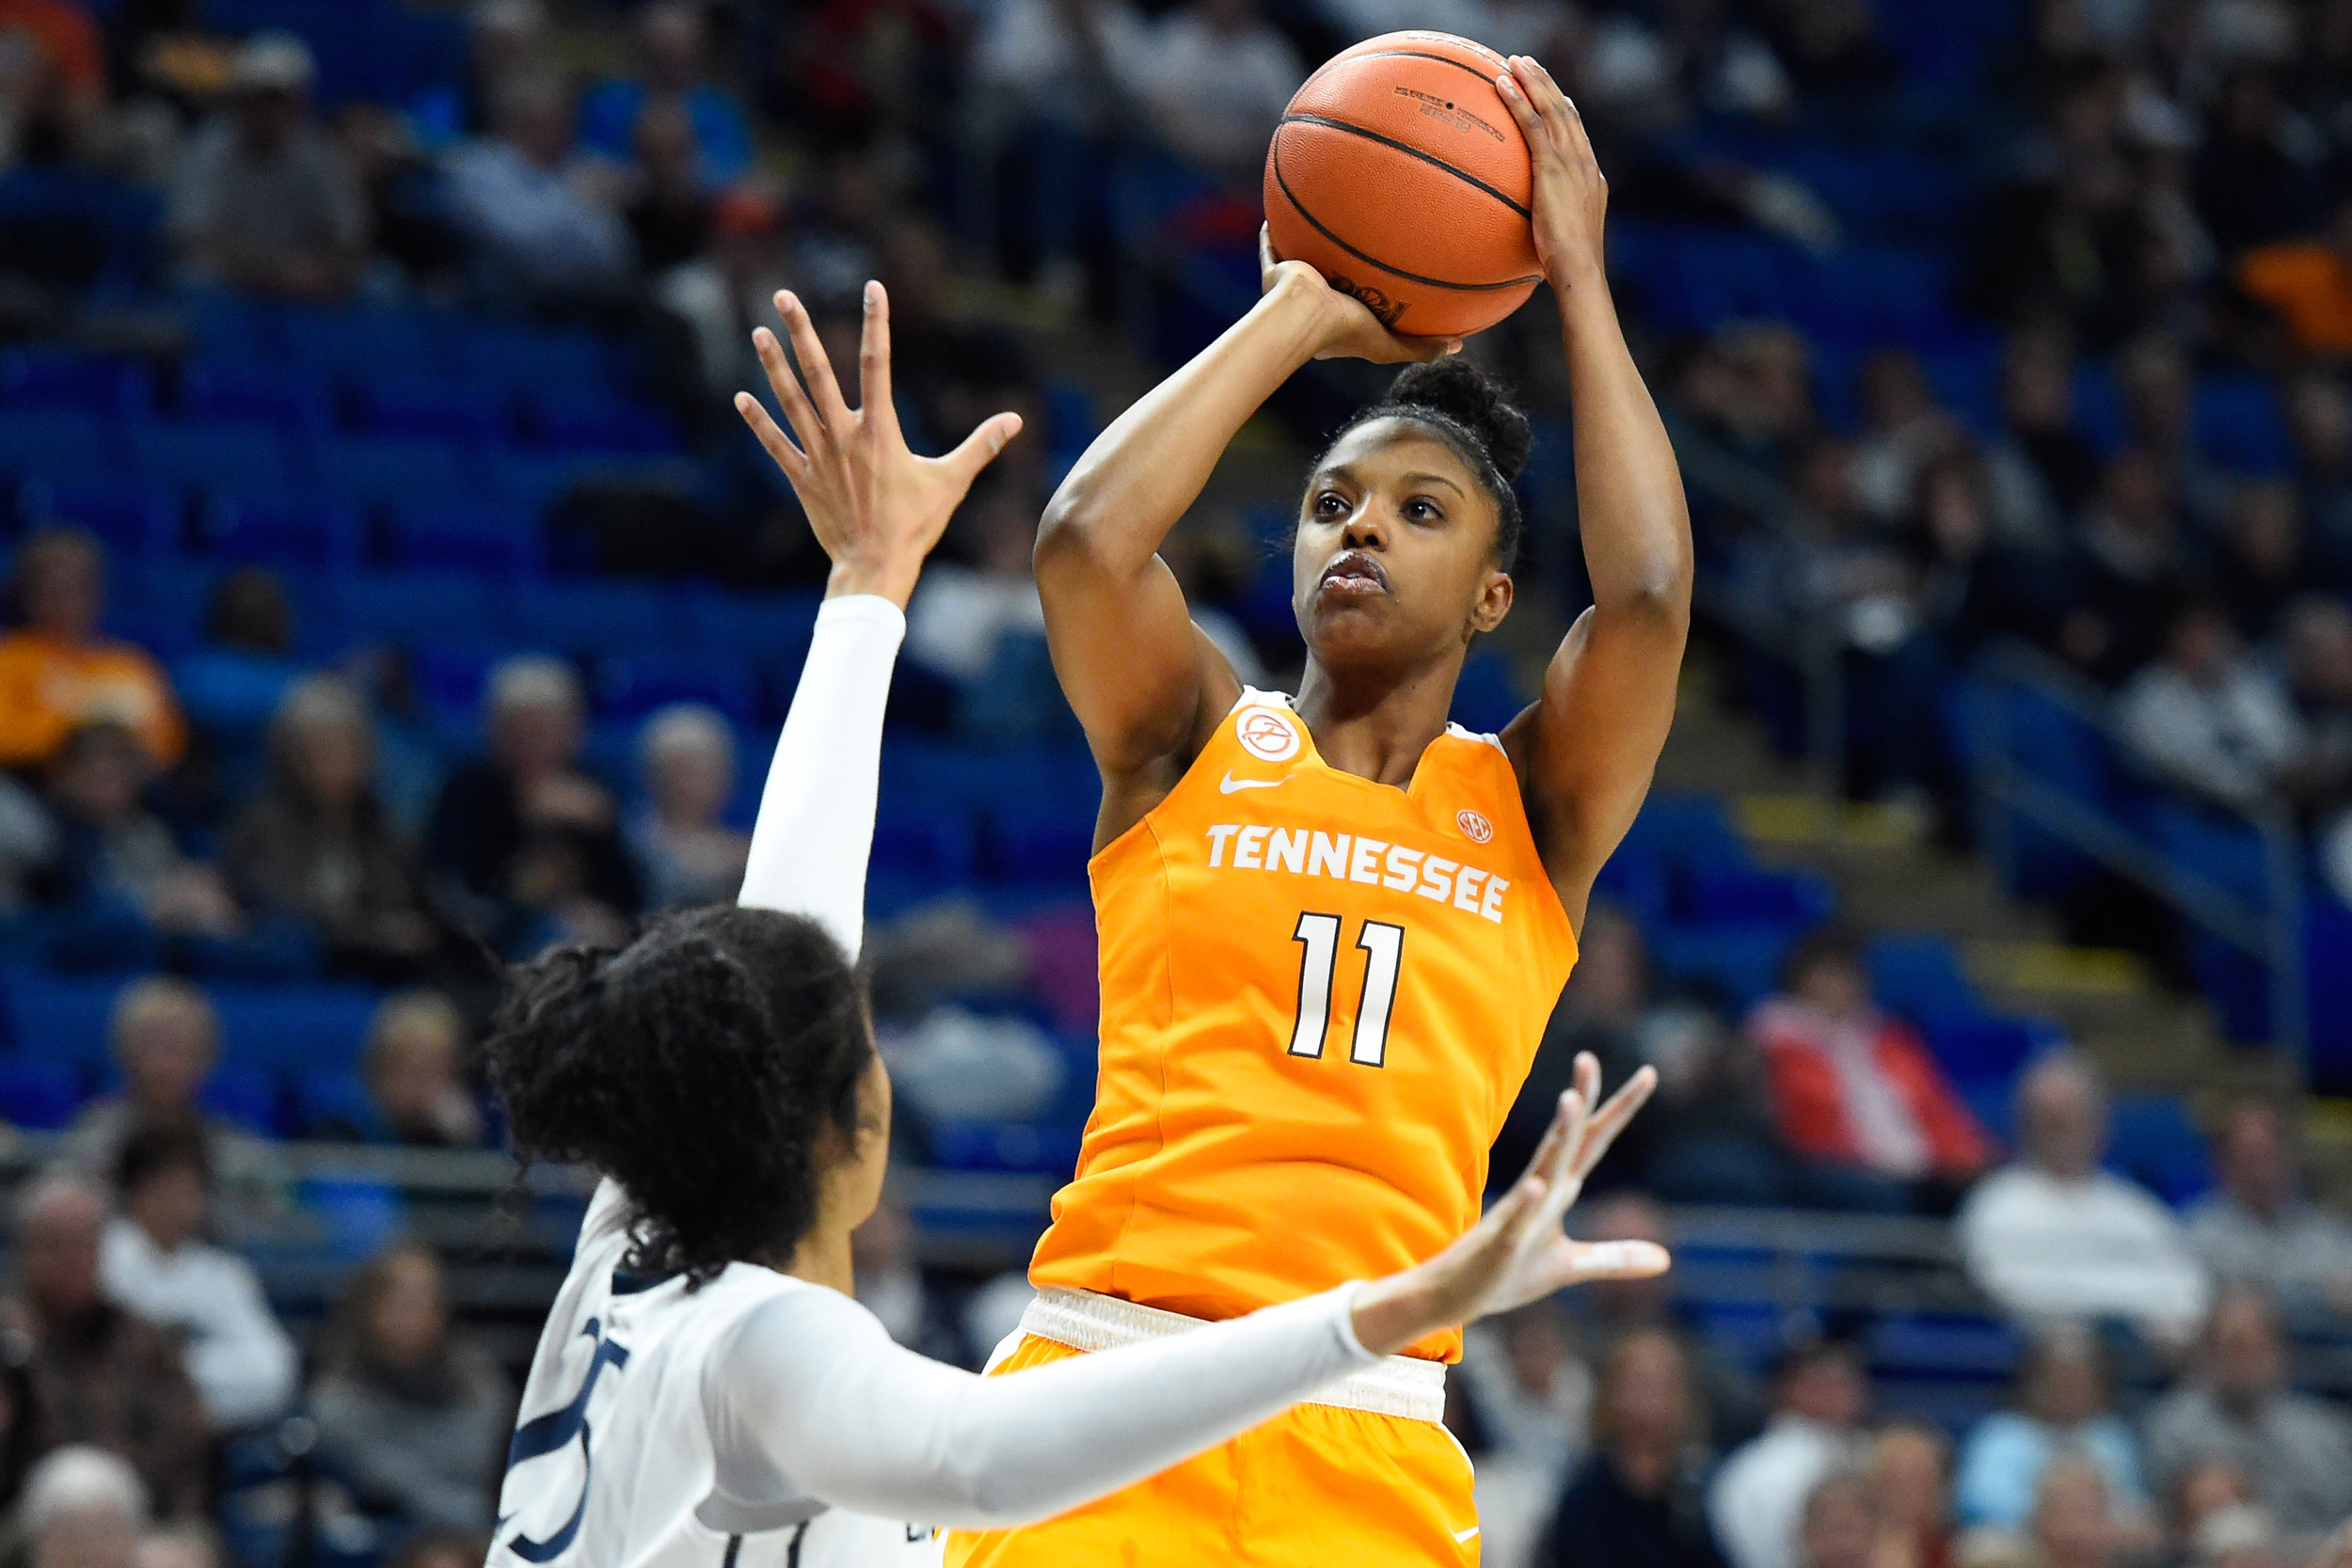 Tennessee Lady Volunteers guard Diamond DeShields (11) shoots the ball against the defense of Penn State Lady Lions forward Peyton Whitted (25) during the second half at the Bryce Jordan Center.